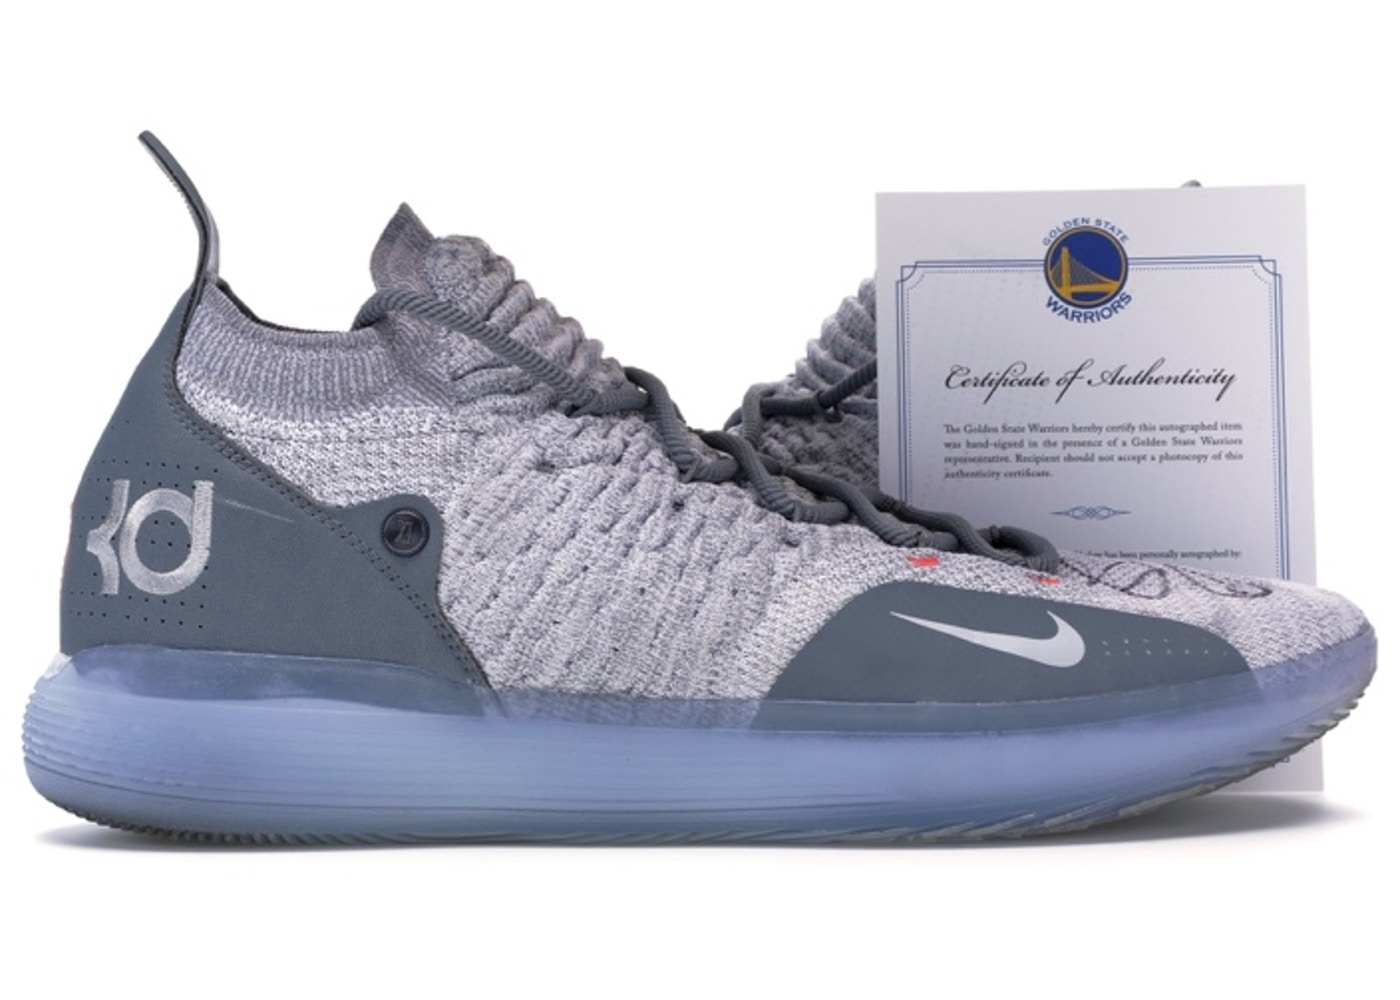 a03813f24a68 Golden State Warriors x Shoe Surgeon Charity Campaign